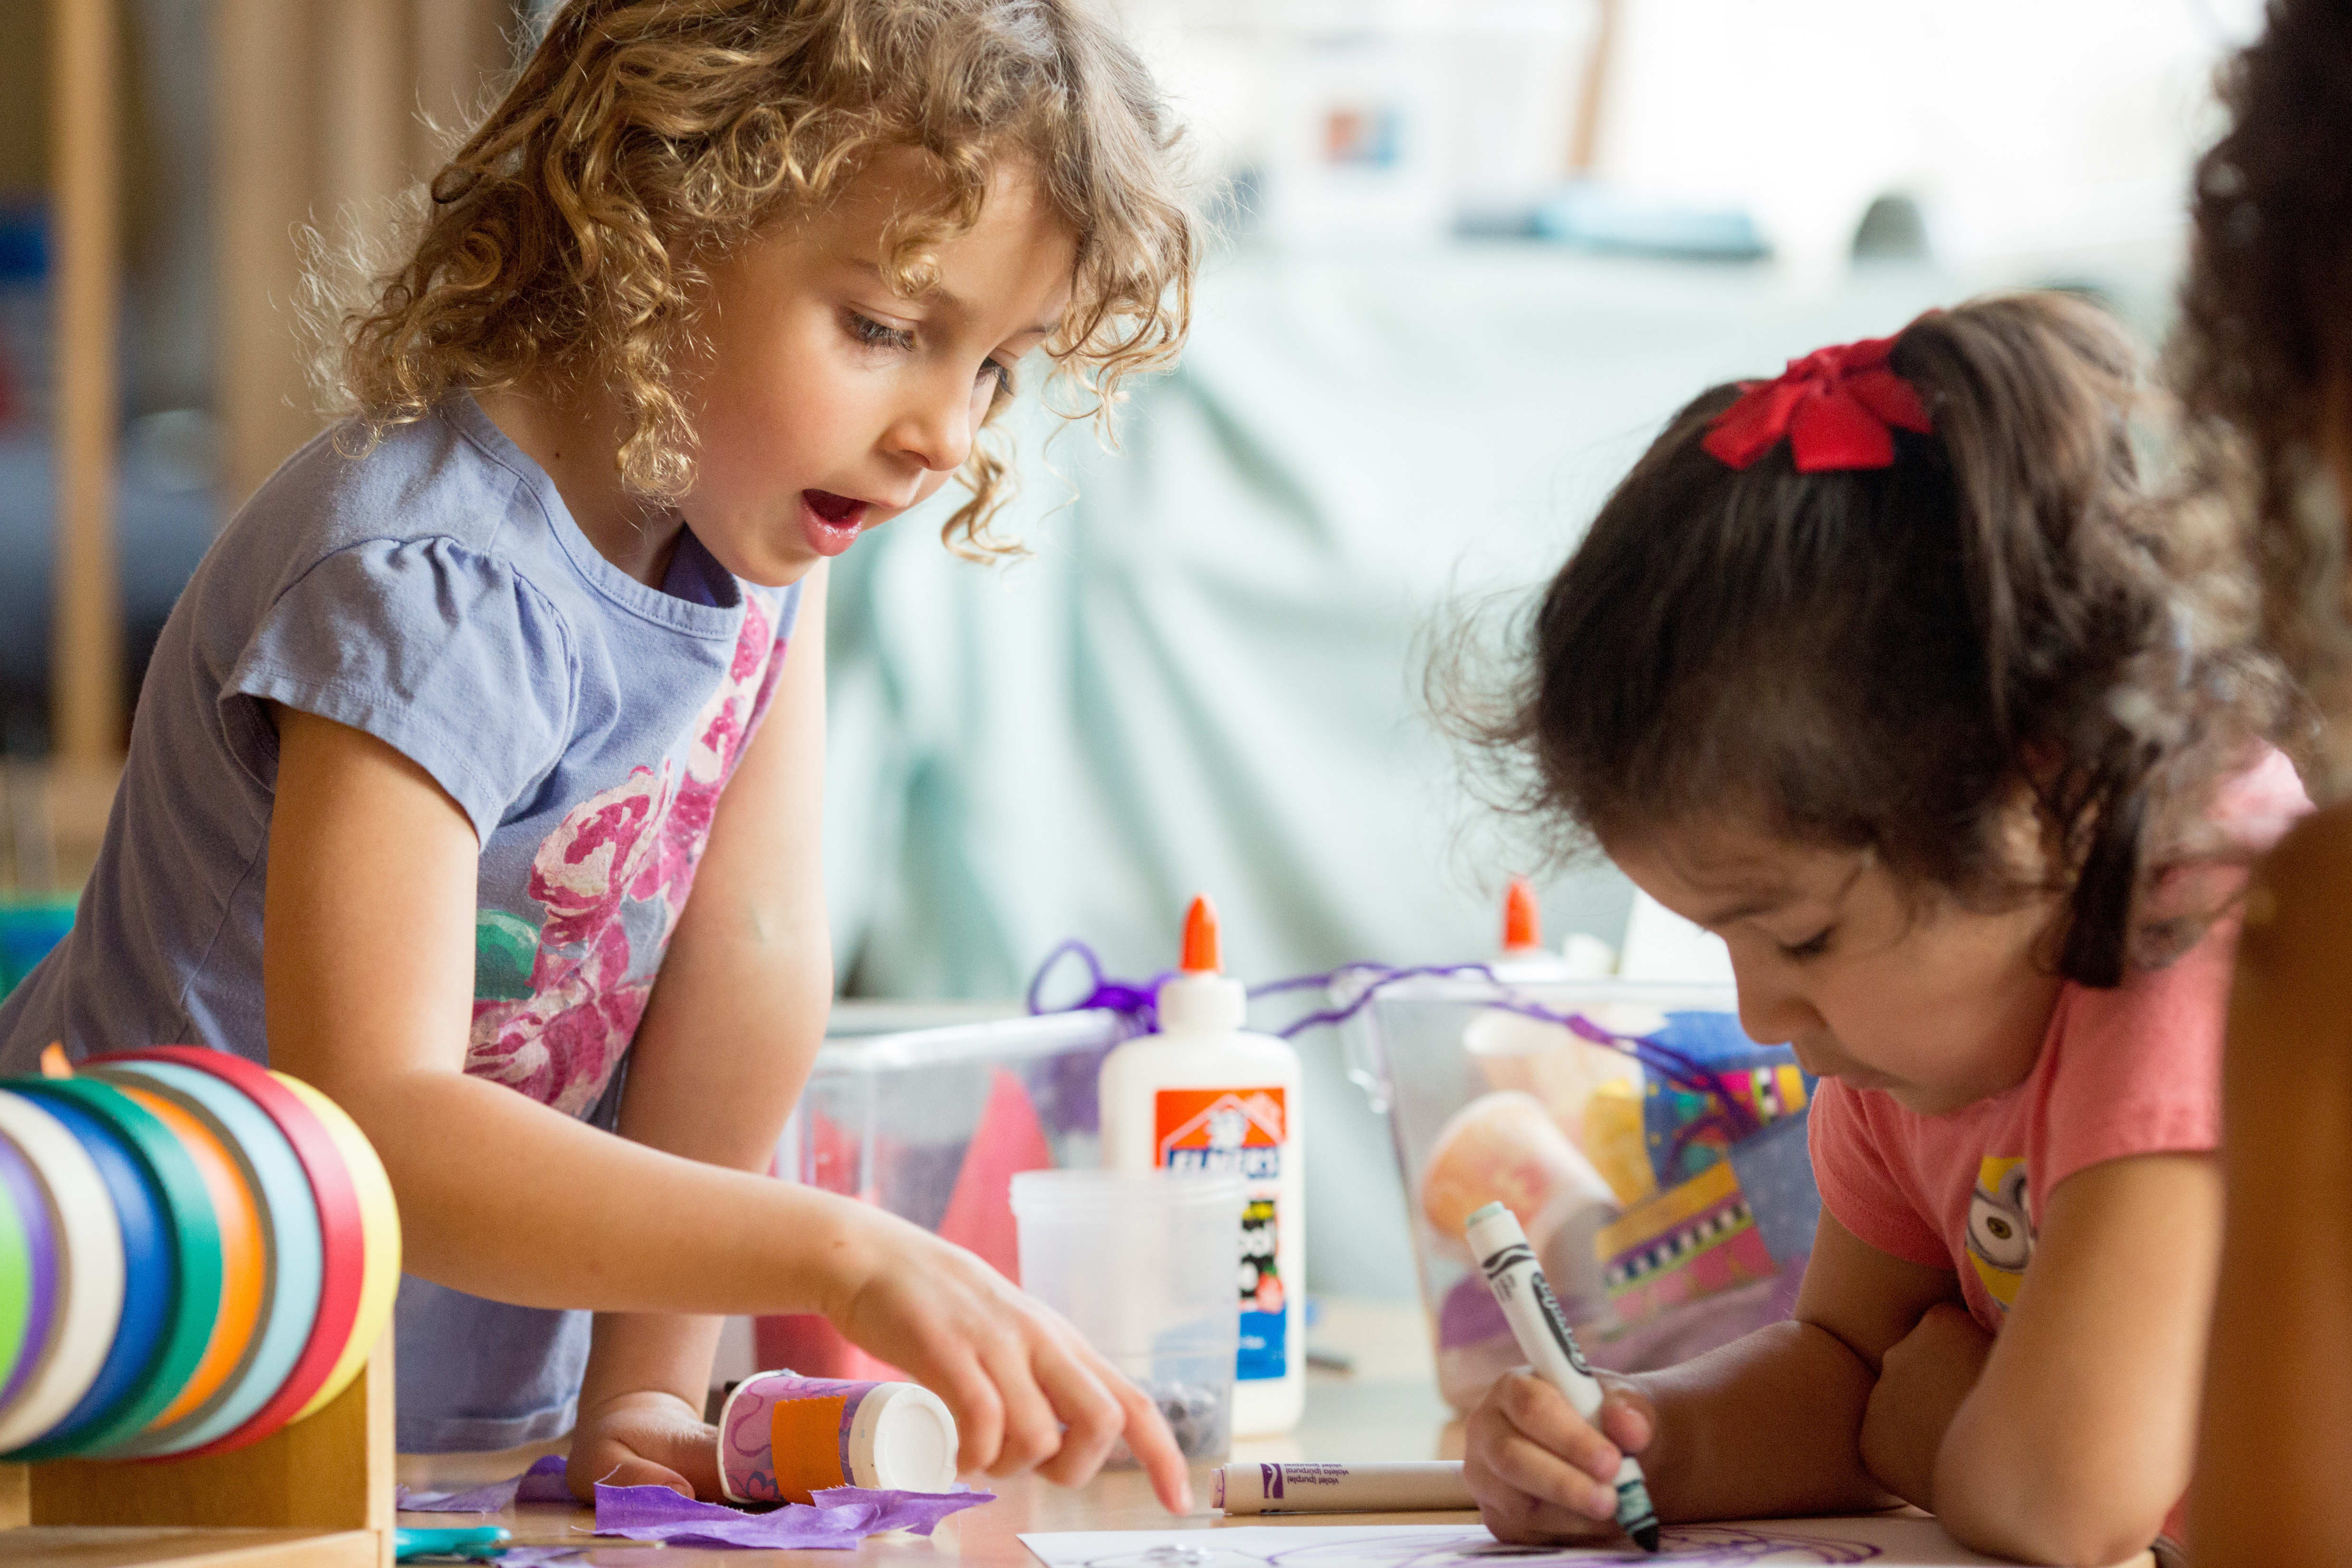 Best ideas about Kids Doing Arts And Crafts . Save or Pin Indispensable Policies & Practices for High Quality Pre K Now.